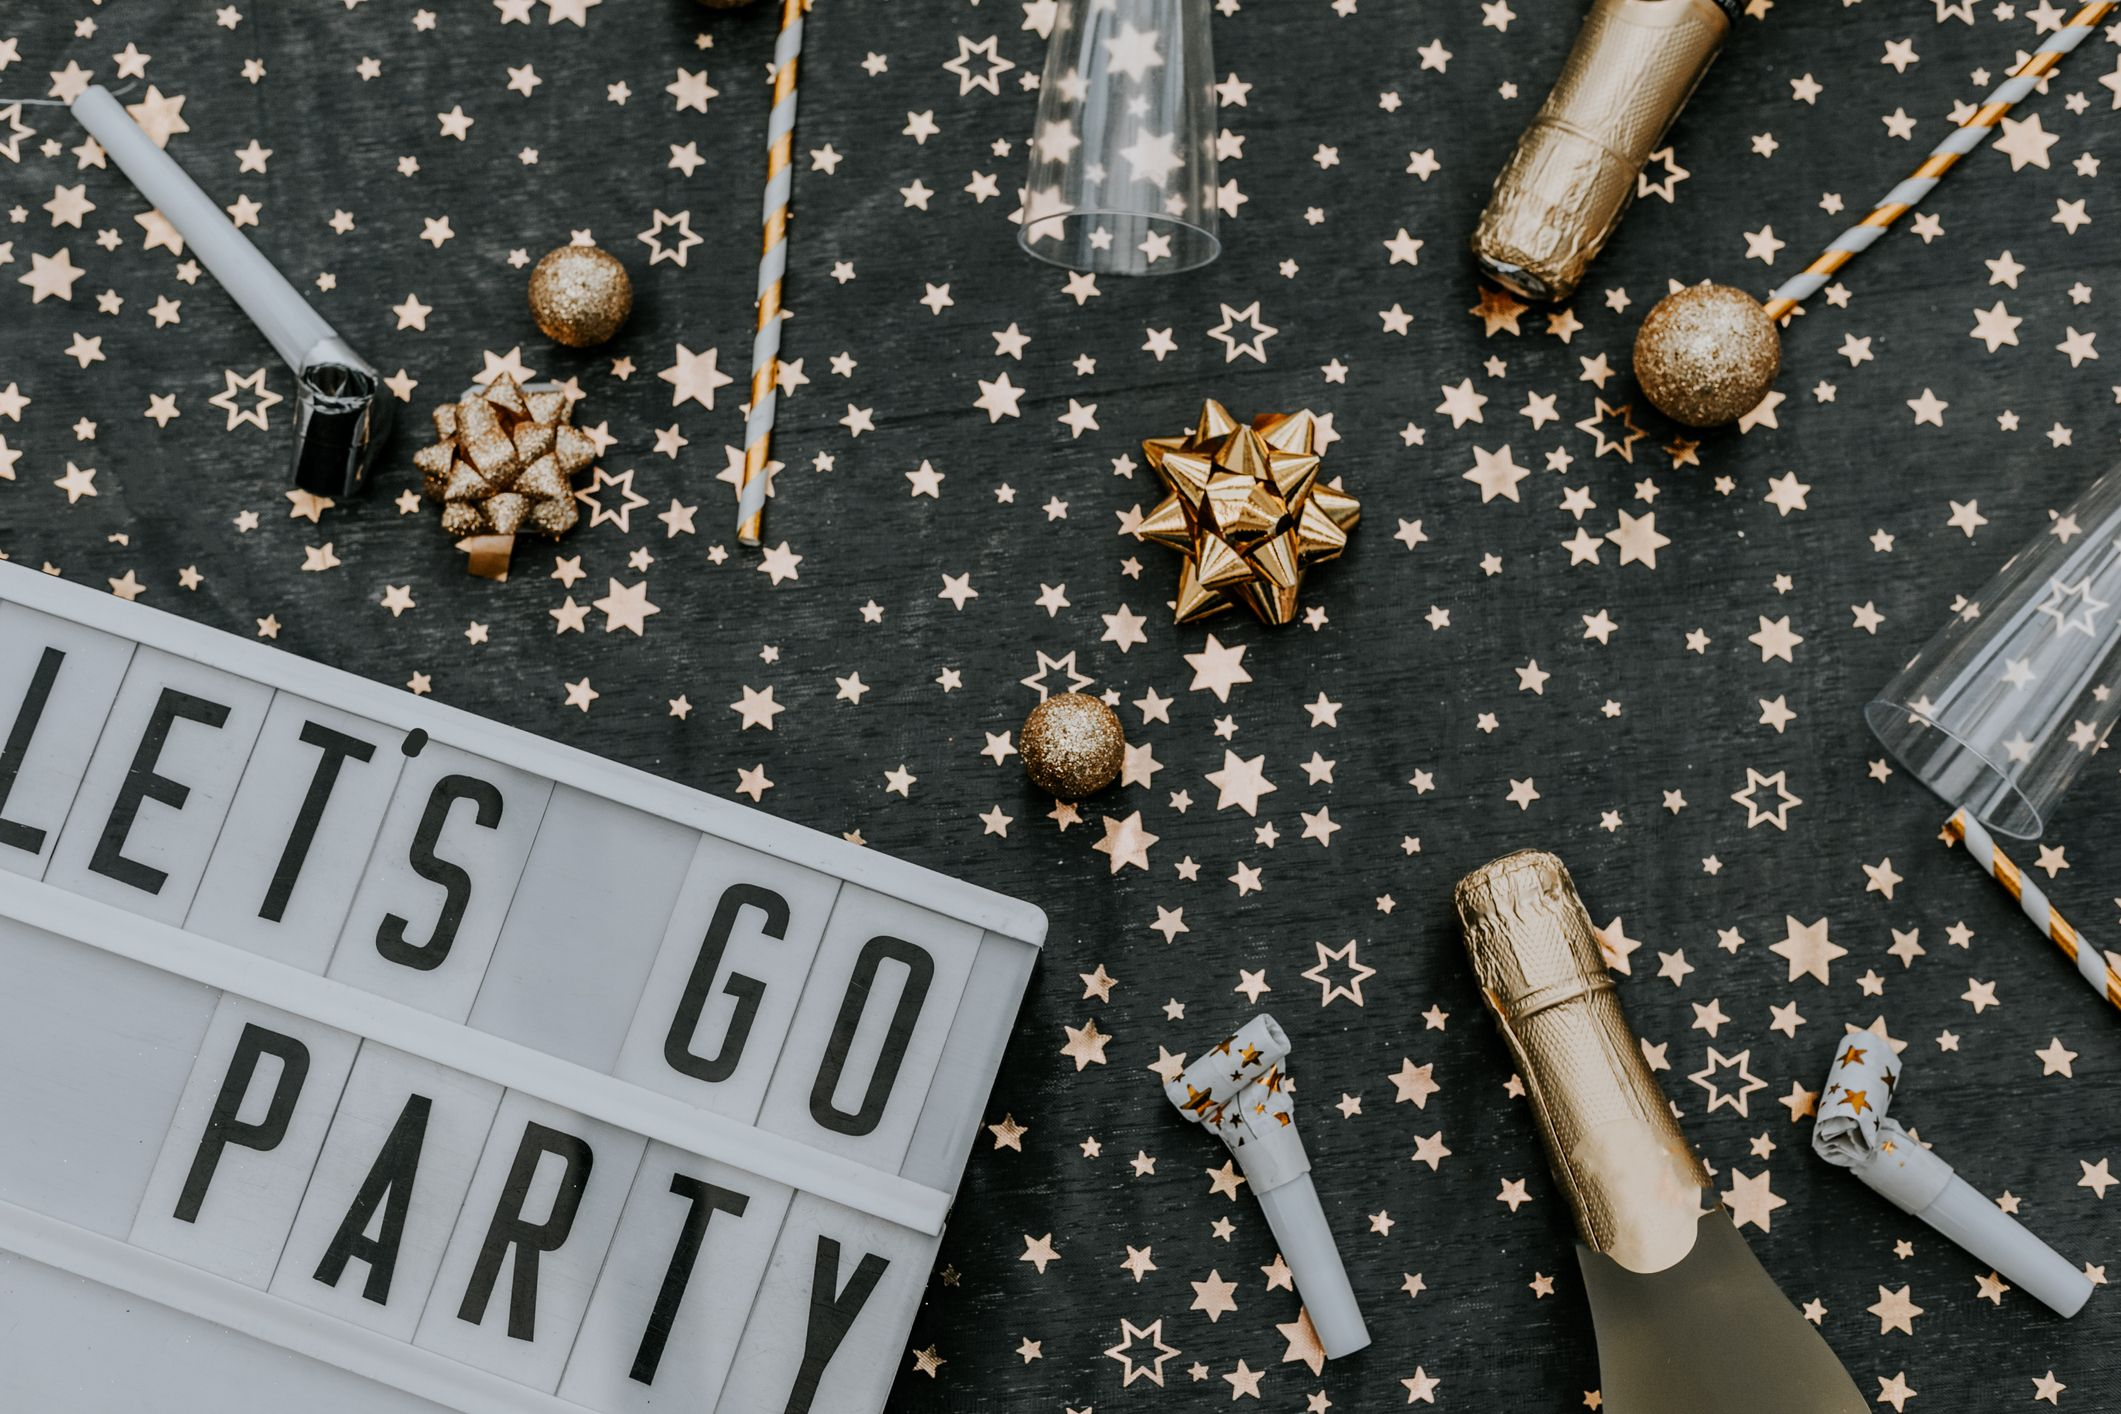 30 Best New Year S Eve Decorations 2021 New Year S Decor